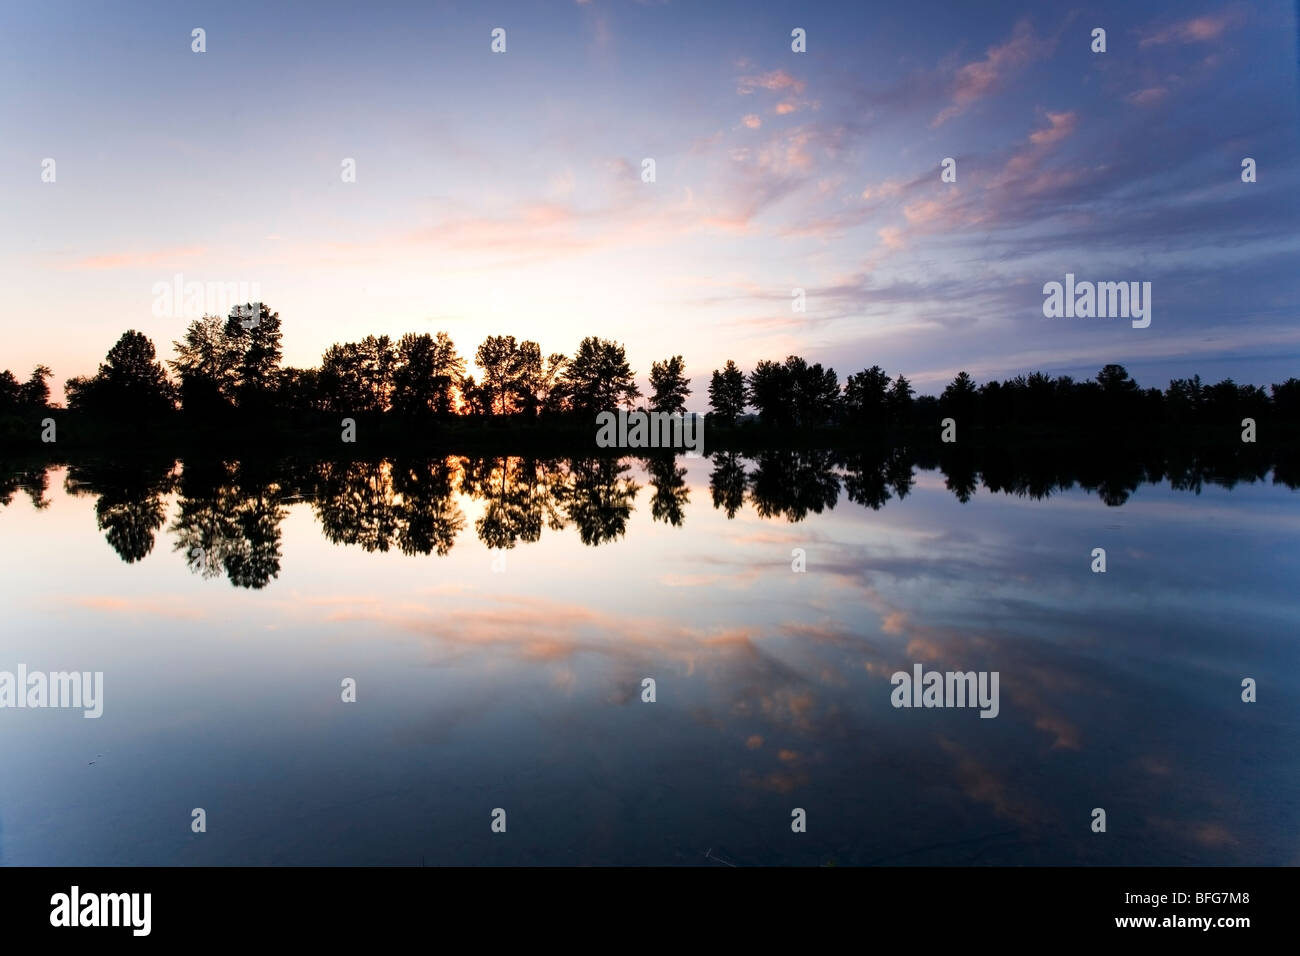 Clouds reflect in a river in Carburn Park in Calgary Alberta at sunset. - Stock Image